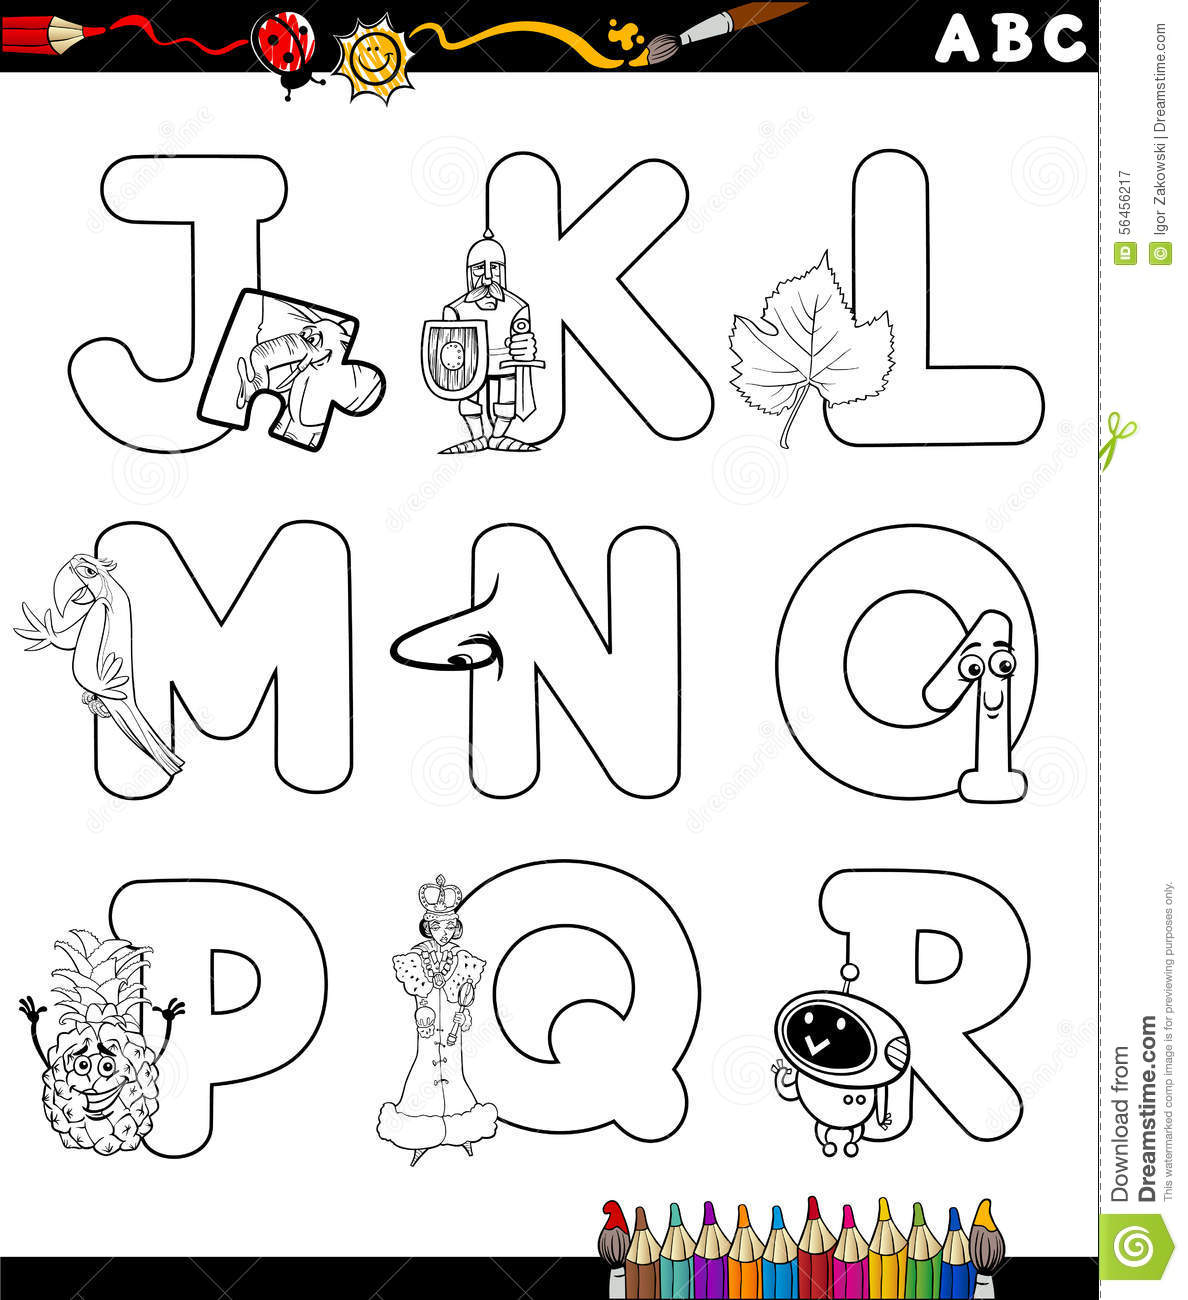 capital j coloring page